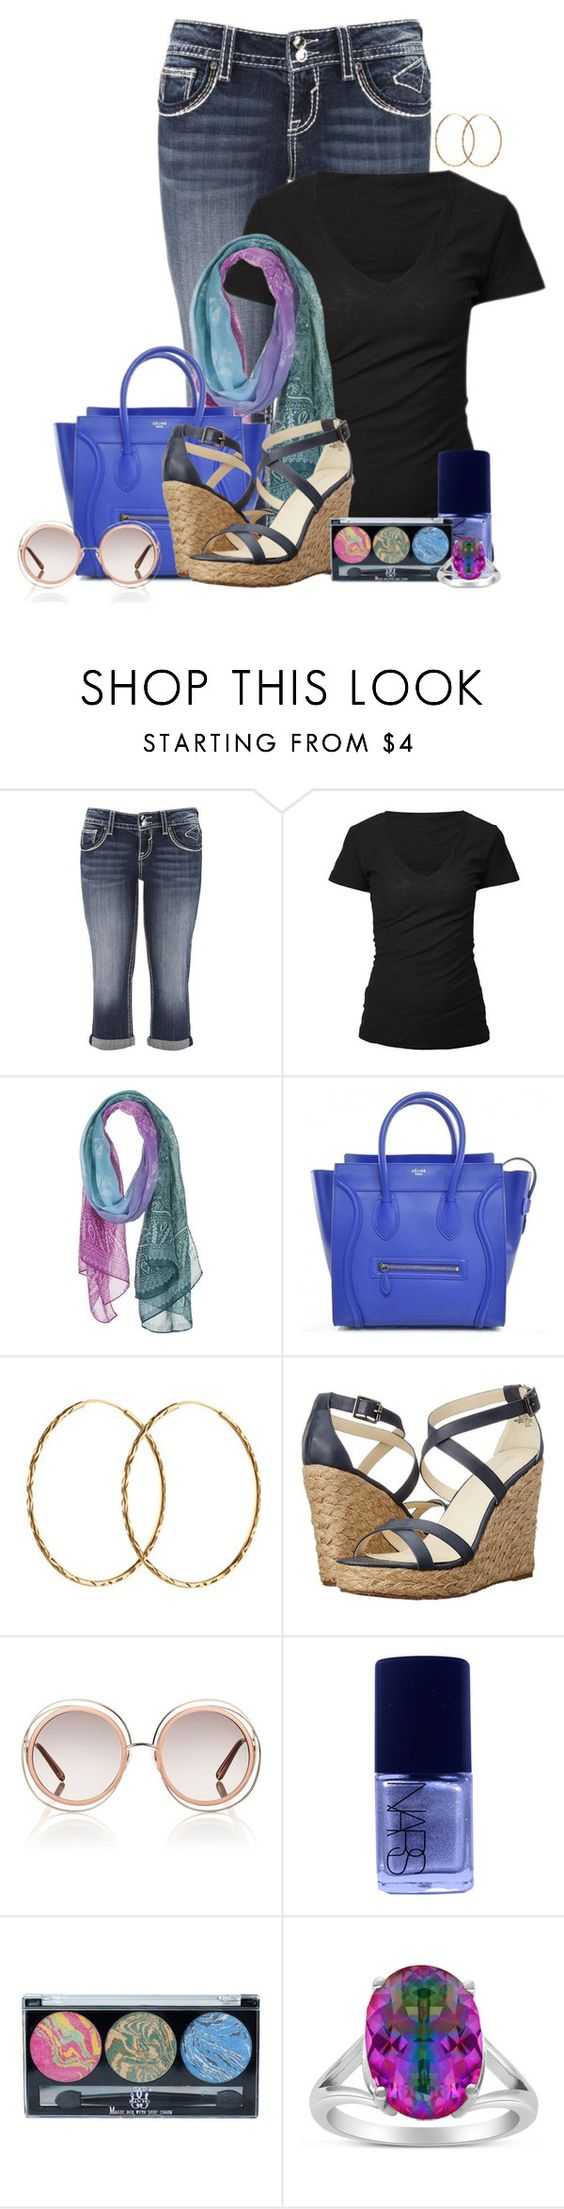 """""""Jenny"""" by lulurose98 ❤ liked on Polyvore featuring maurices, James Perse, Pernille Corydon, Gabriella Rocha, Chloé, NARS Cosmetics, Rainbow, women's clothing, women and female"""